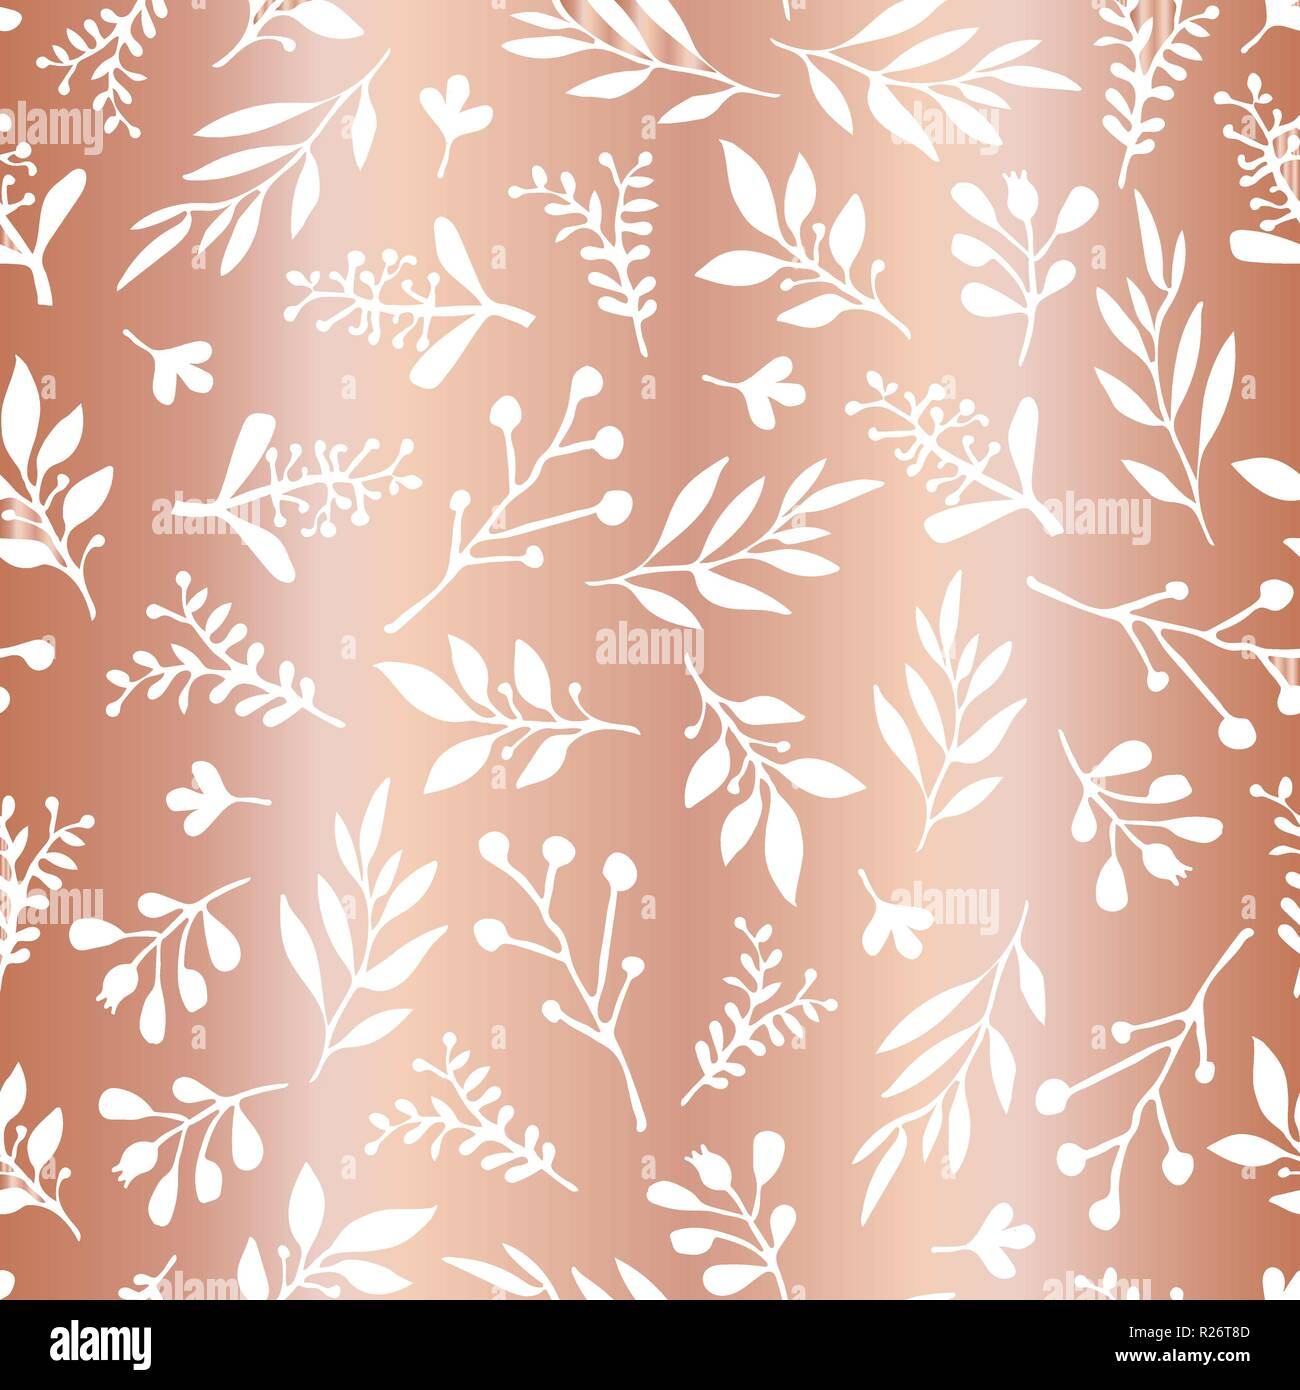 Copper Foil Leaves Elegant Seamless Vector Background Simple Abstract White Leaf On Metallic Rose Gold Foil Texture Endless Foliage Pattern Paper Web Banner Cards Wedding Celebration Invite Stock Vector Image Art